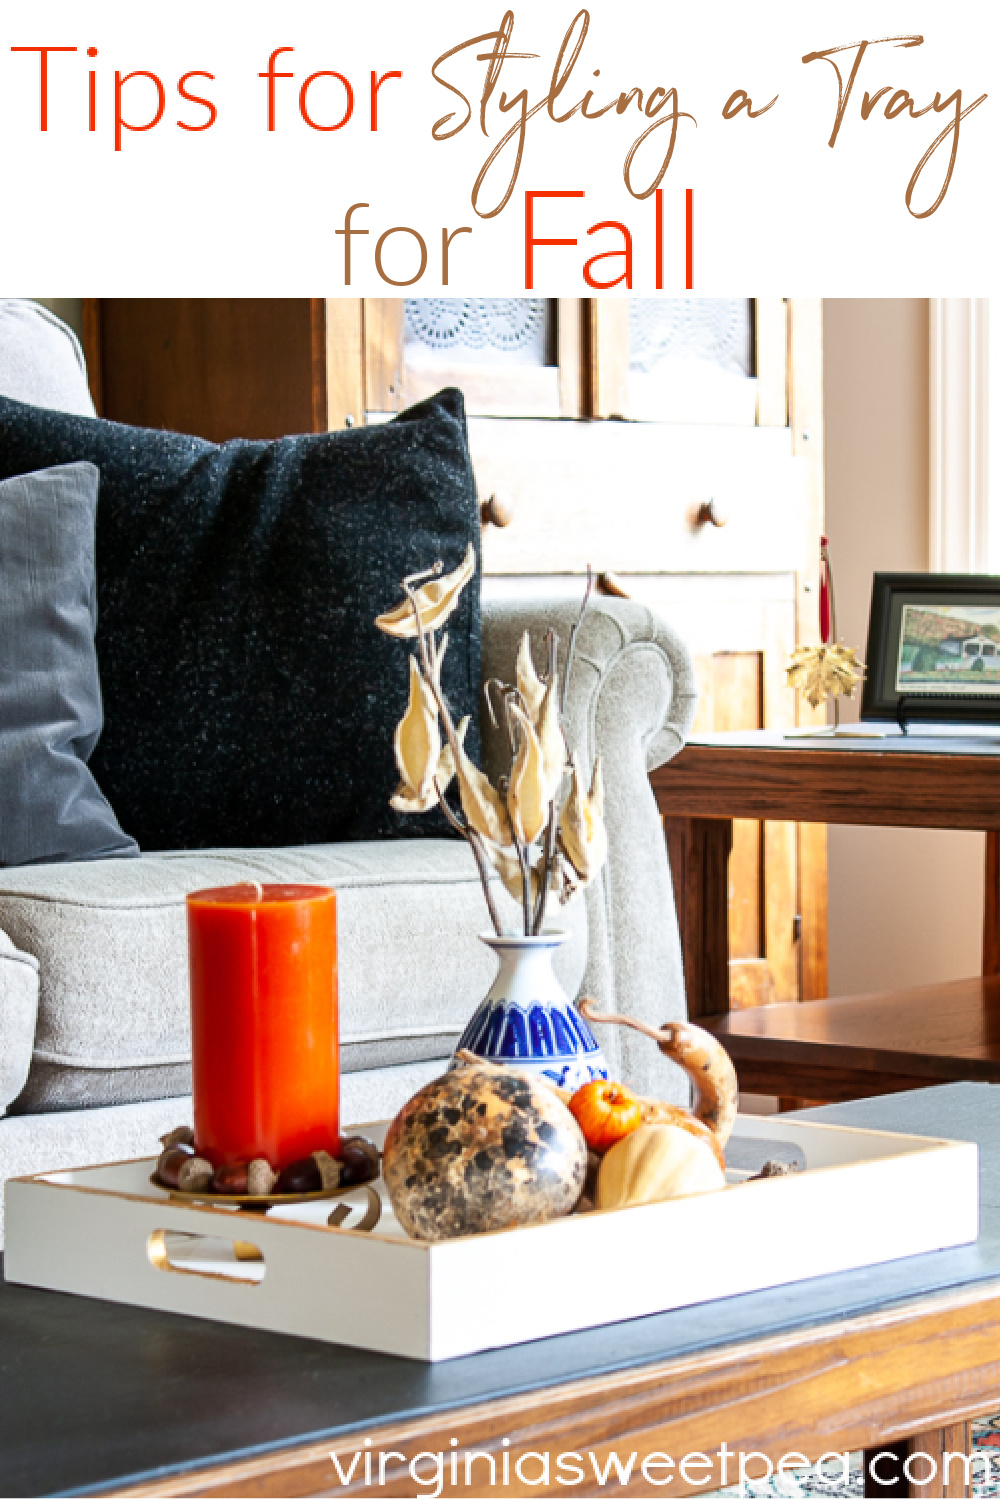 Tips for Styling a Tray for Fall - A tray is a wonderful item to use for home decor in any season.  Get tips for how to decorate a tray for fall and use the same concept to decorate the tray for any season. via @spaula